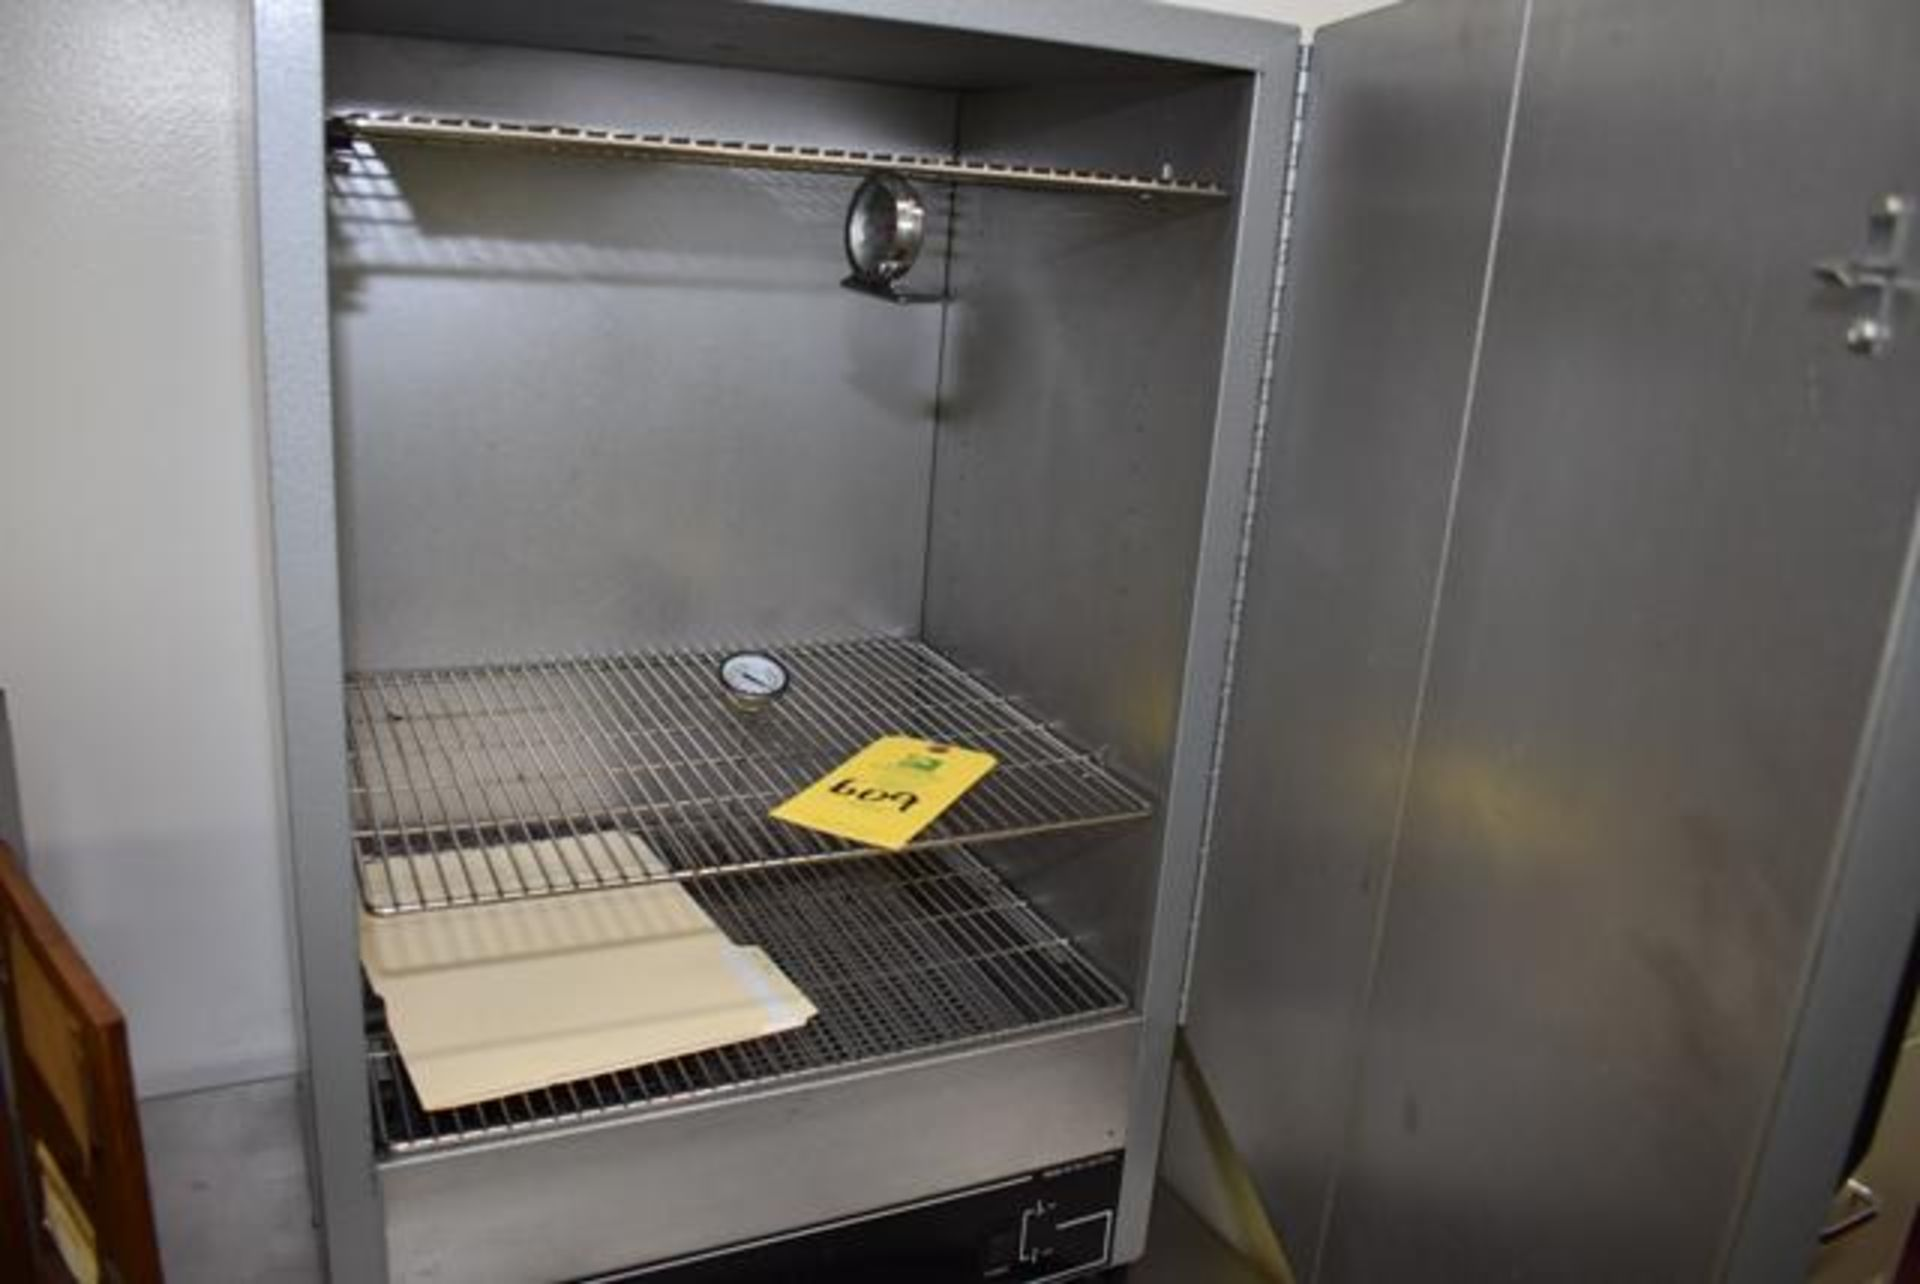 Lot 609 - Quincy Lab Model 40GC, Series Lab Oven, Loading Fee: $25